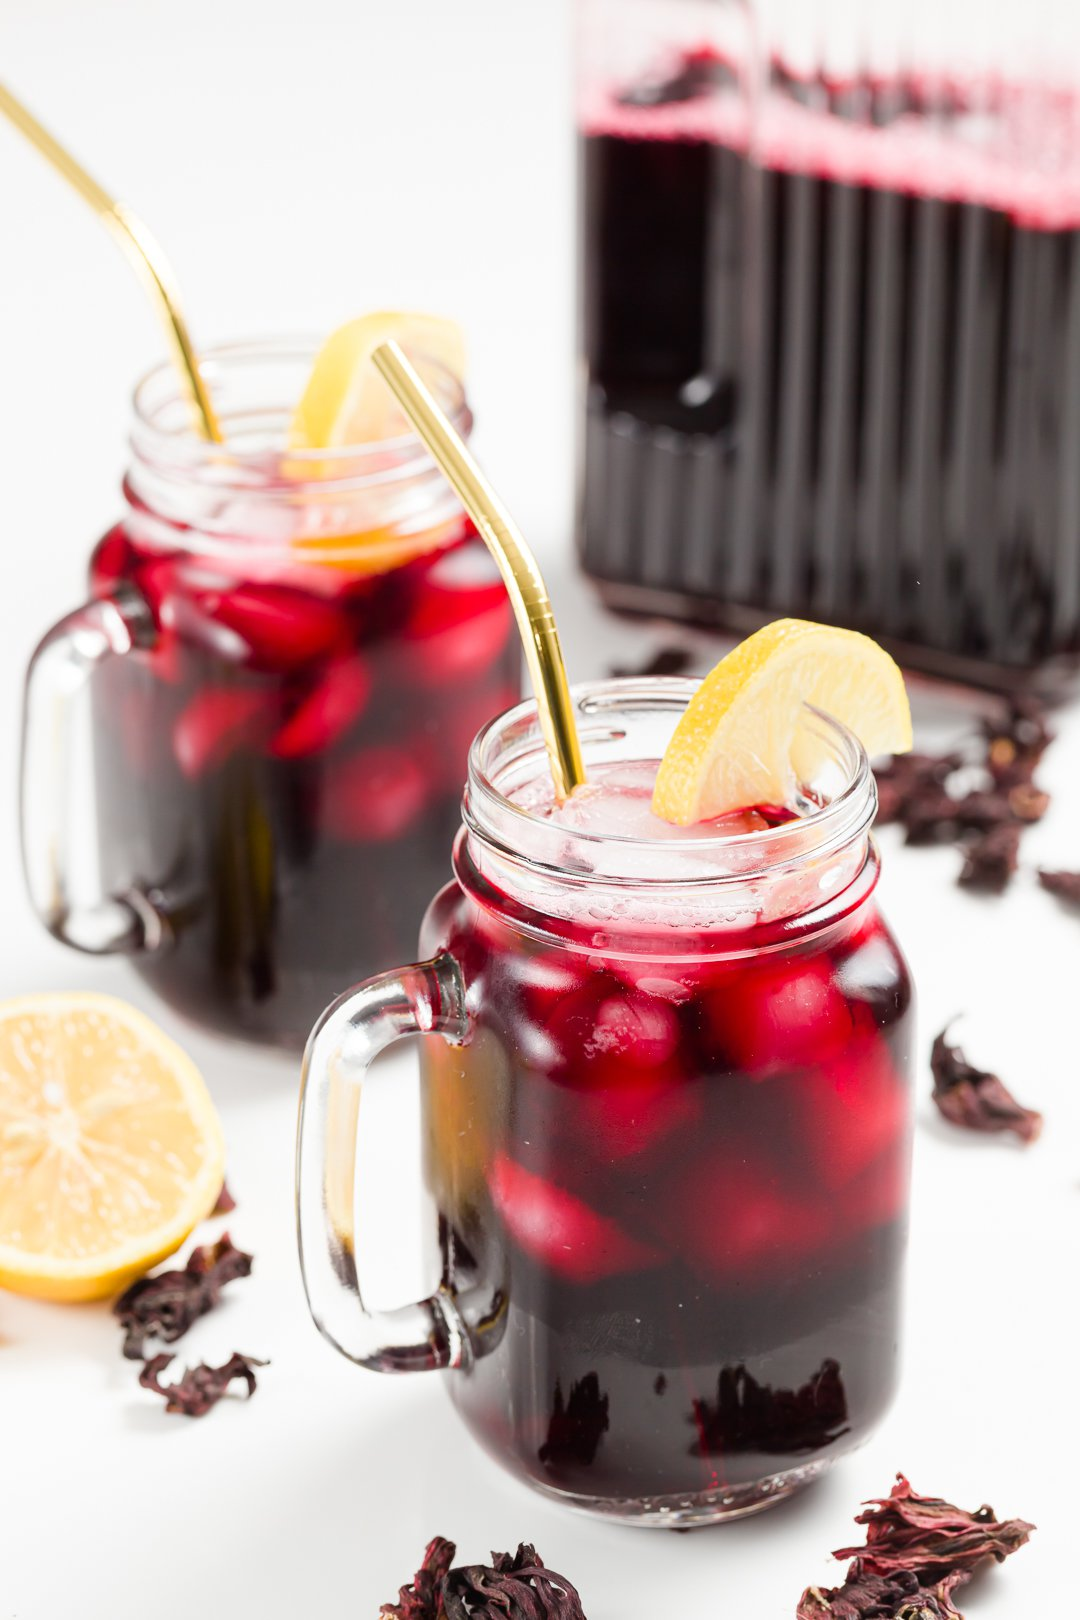 Two glasses of iced hibiscus tea garnished with lemon